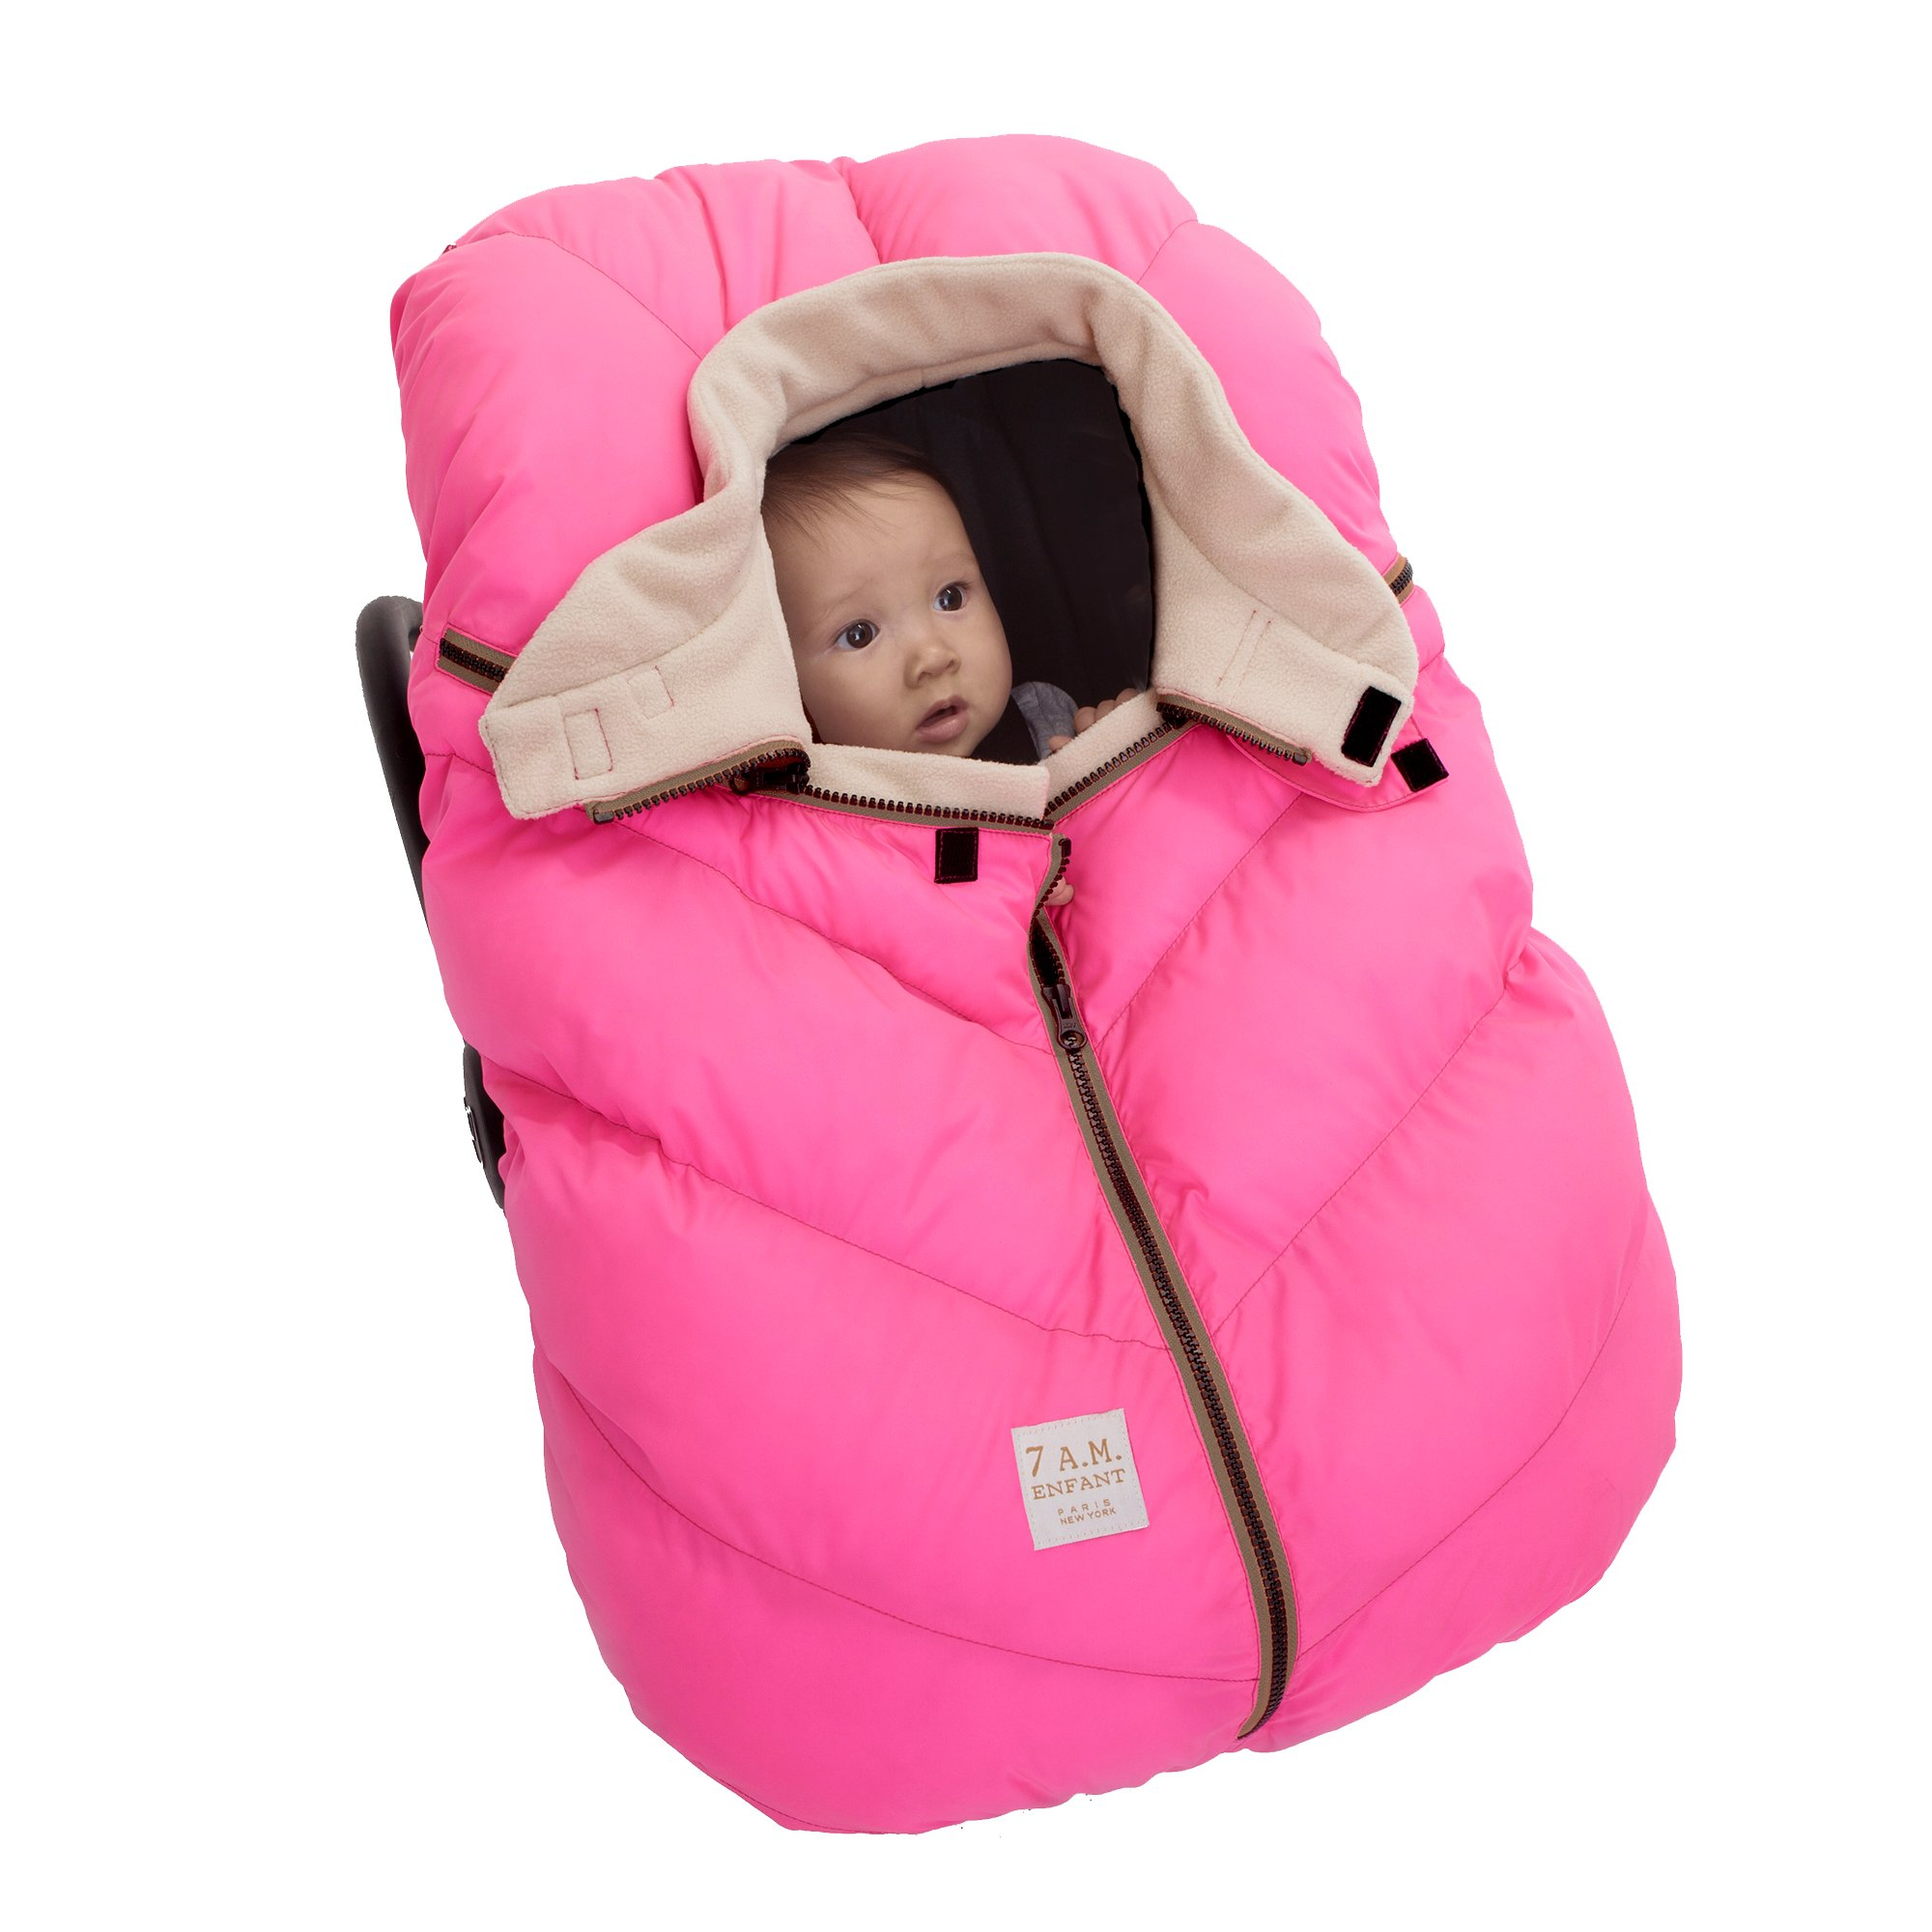 7AM Enfant Car Seat Cocoon: Infant Car Seat Cover Micro-Fleece Lined with an Elasticized Base, Neon Pink